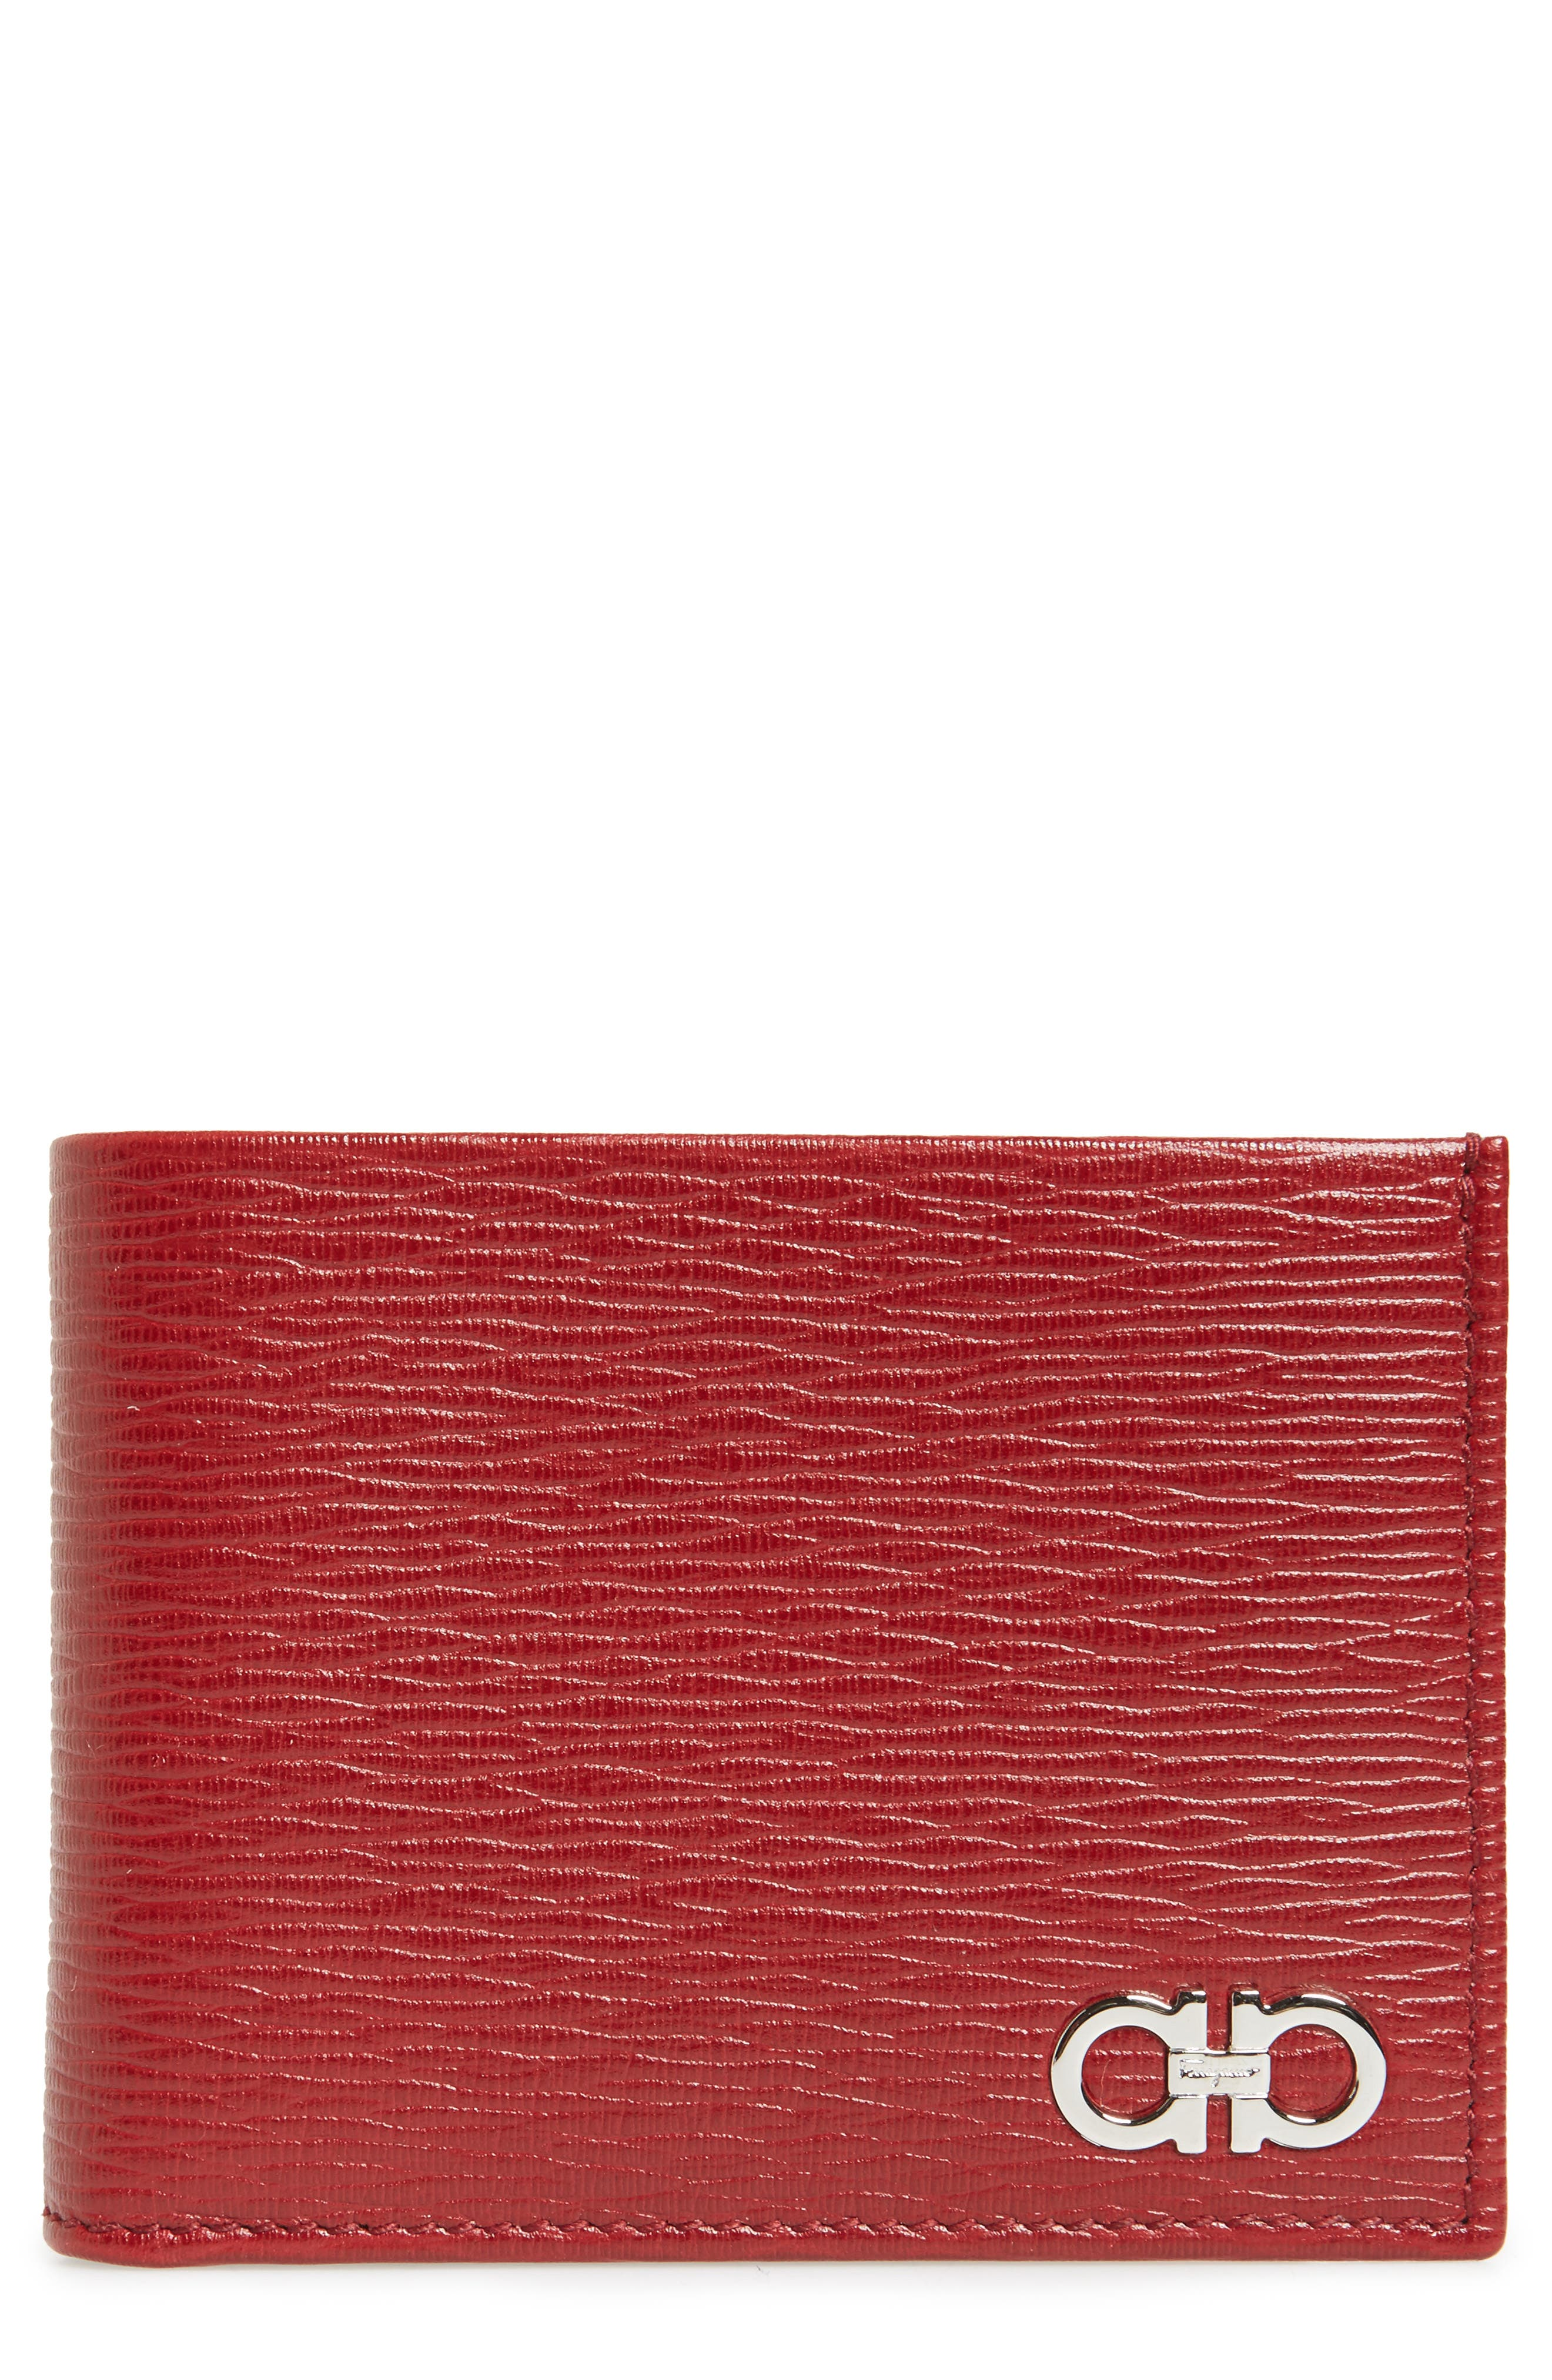 Revival Bifold Leather Wallet,                         Main,                         color, Red